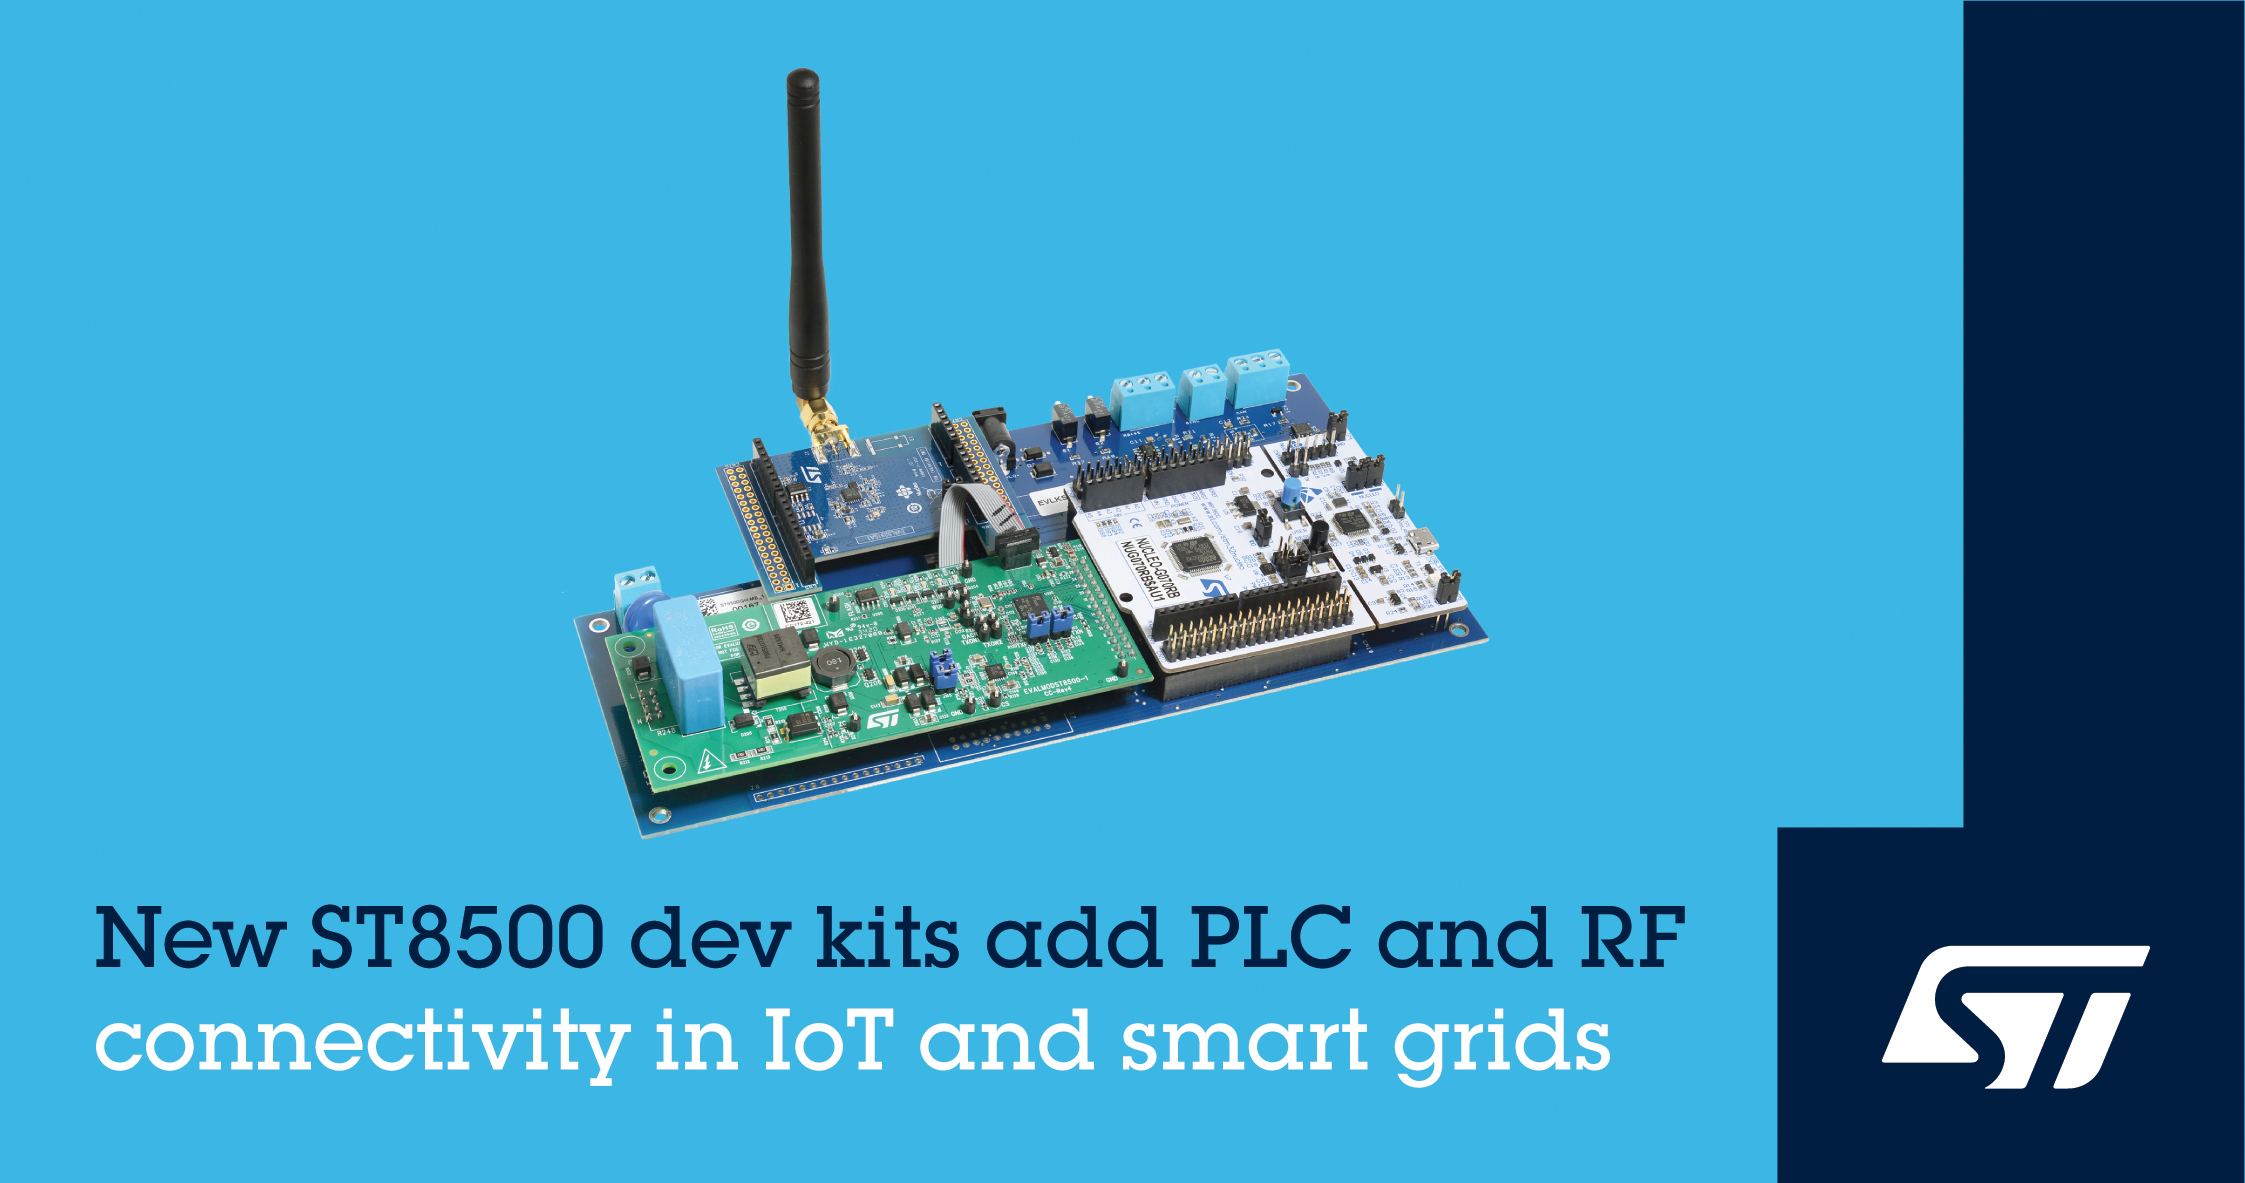 STMicroelectronics Evaluation Boards to Boost the G3-PLC Hybrid Connectivity into Smart Devices